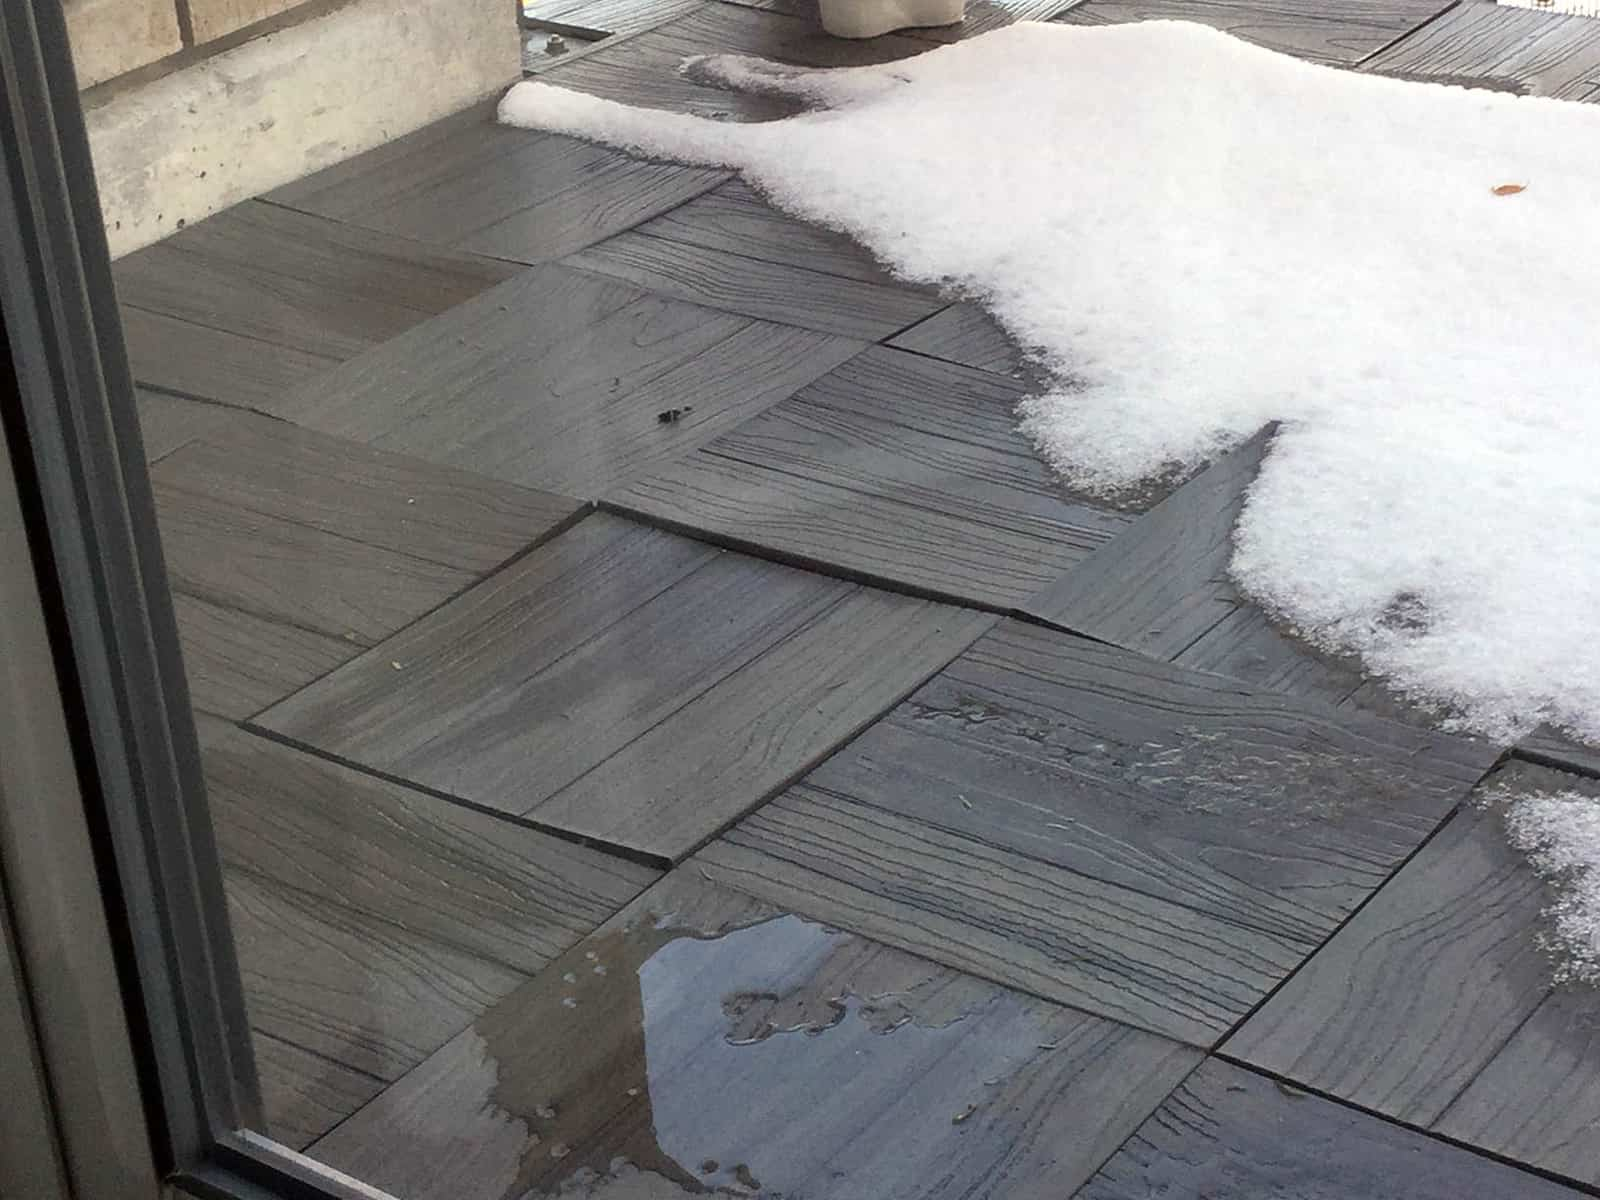 Warped Home Depot Tiles- installed only the preceding summer! Solid grey 1x1-foot WPC tiles.